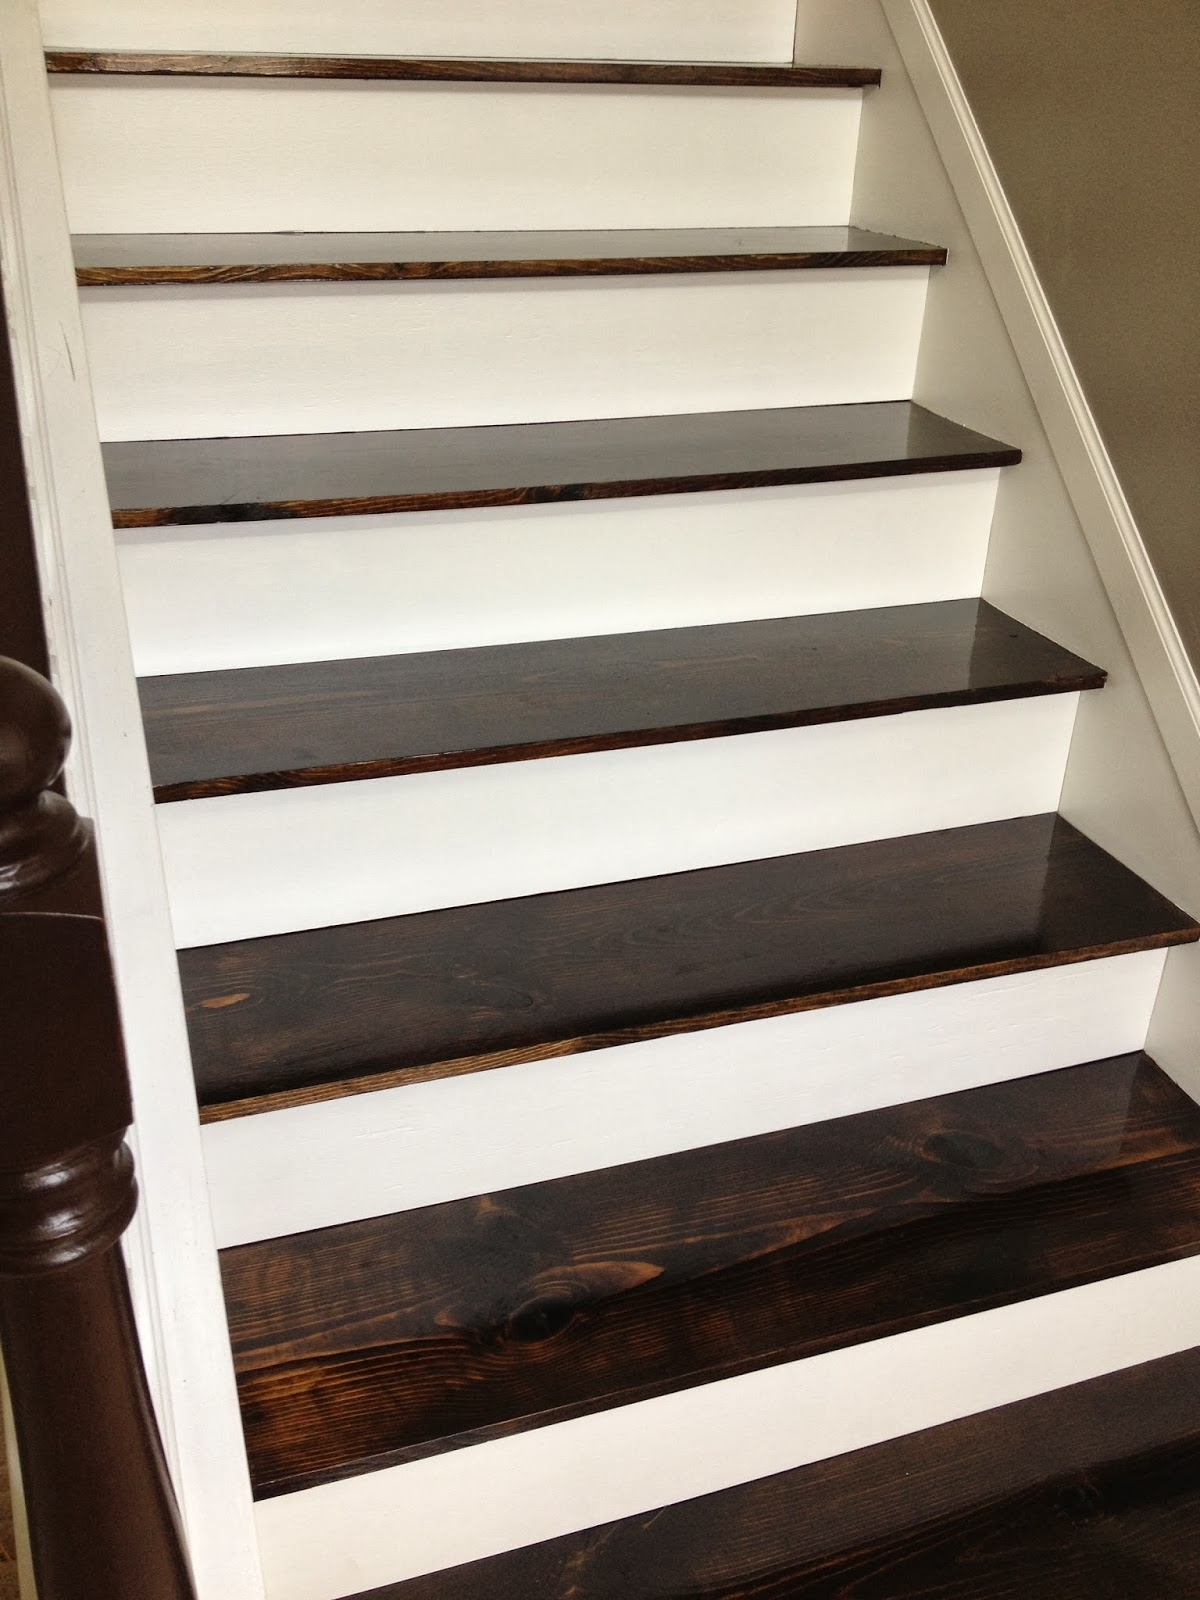 Remodelaholic 60 Carpet To Hardwood Stair Remodel Regarding Carpet Treads For Hardwood Stairs (Image 11 of 15)